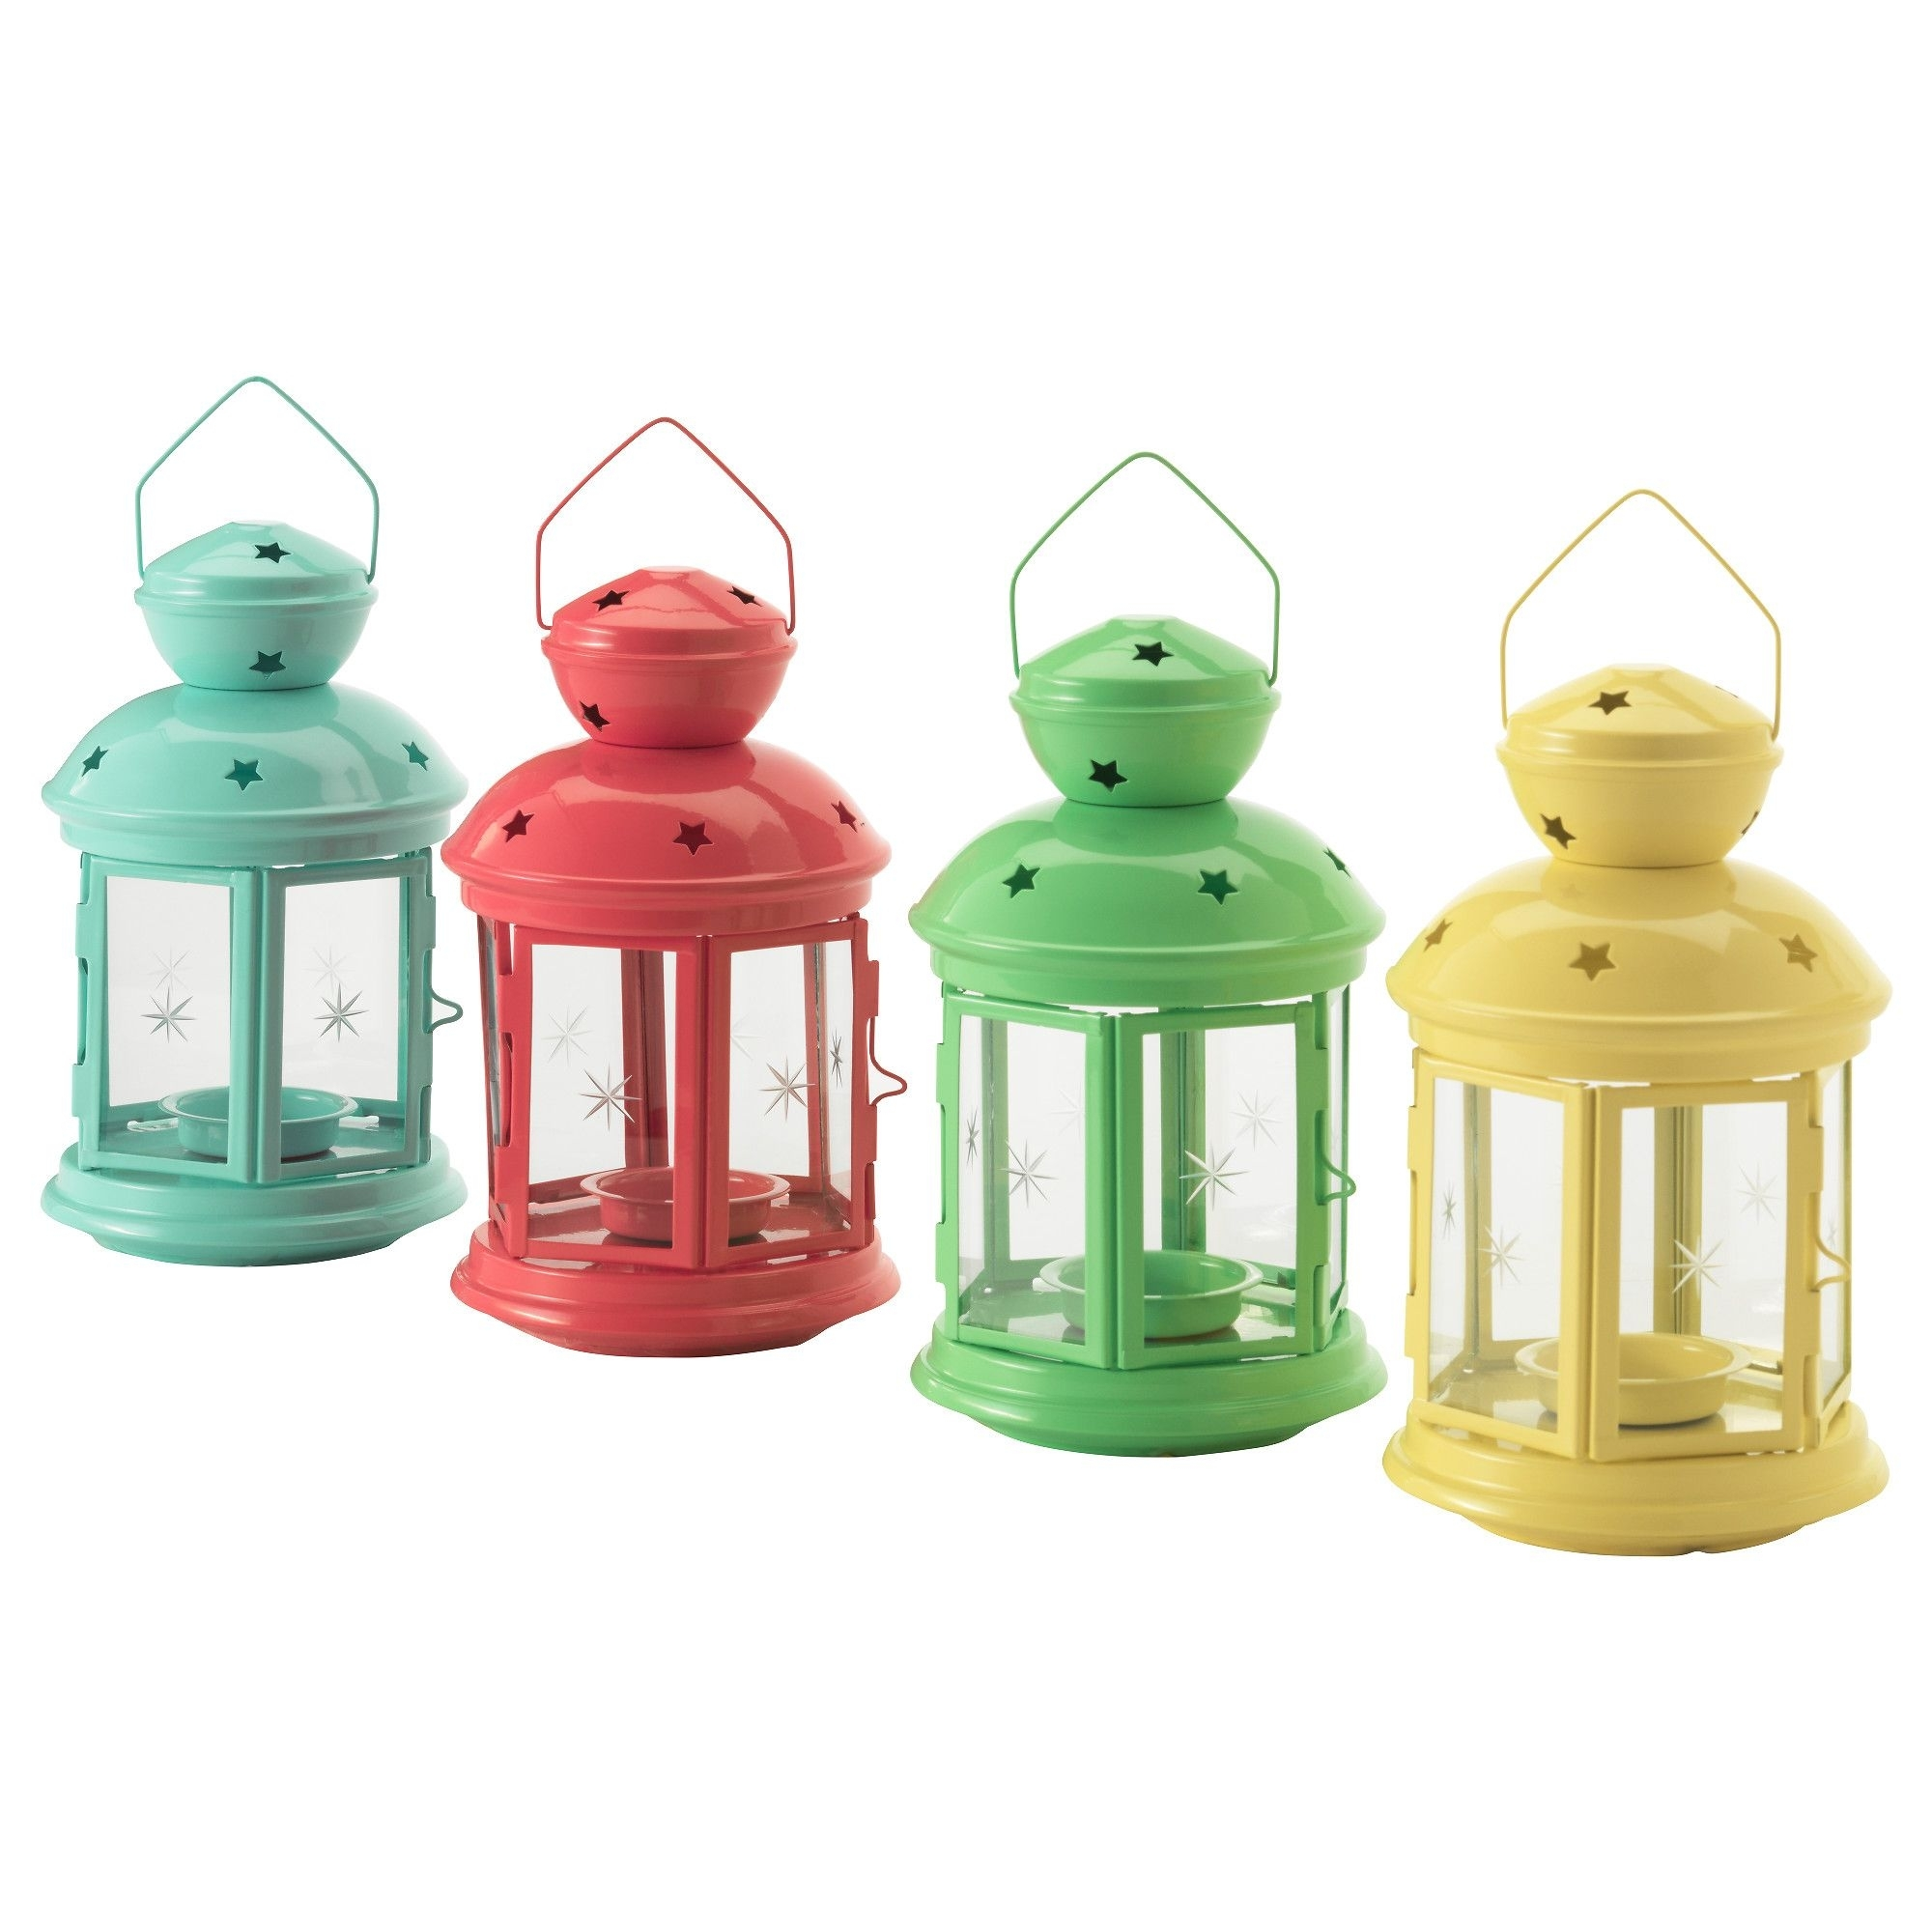 Rotera Lantern For Tealight - Ikea | Crab Feed | Pinterest intended for Ikea Outdoor Lanterns (Image 17 of 20)